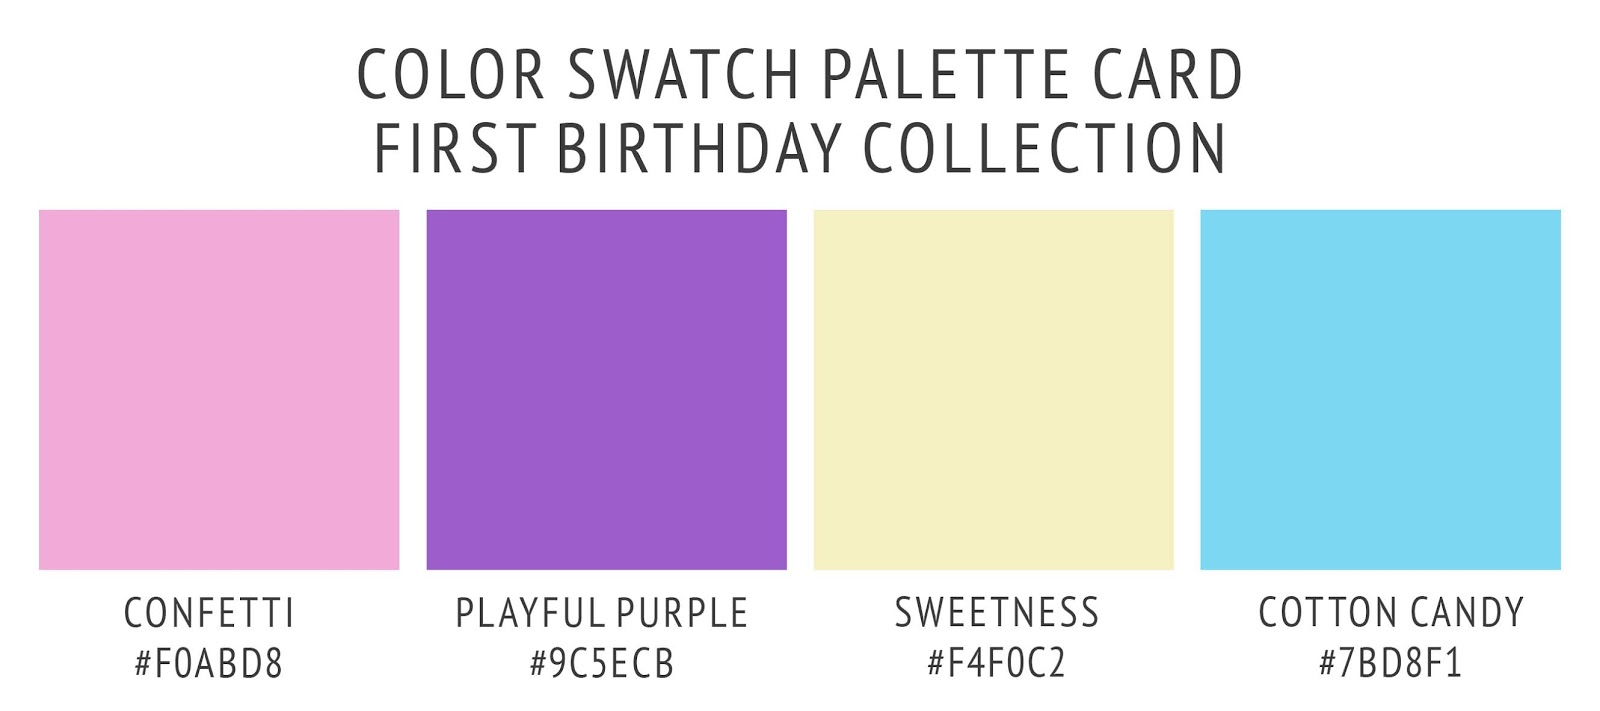 Party bear and balloons first birthday collection's color palette card. With swatches and color hex codes. In playful purple, cotton candy blue, confetti pink, and sweetness yellow color scheme.